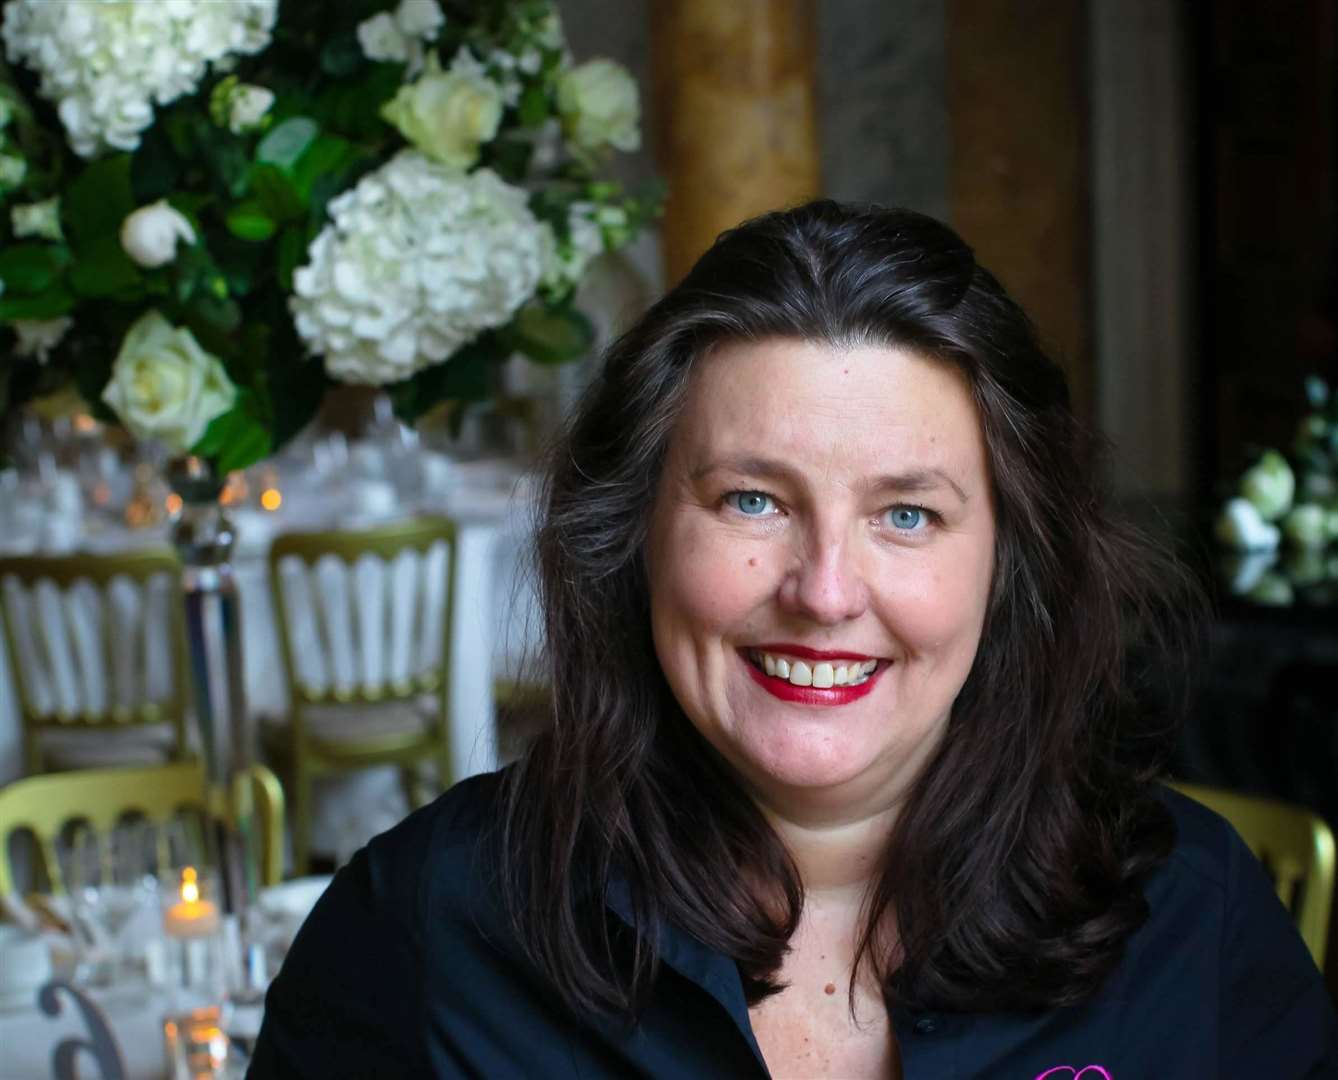 Chic Weddings and Events owner Laurie Edwards